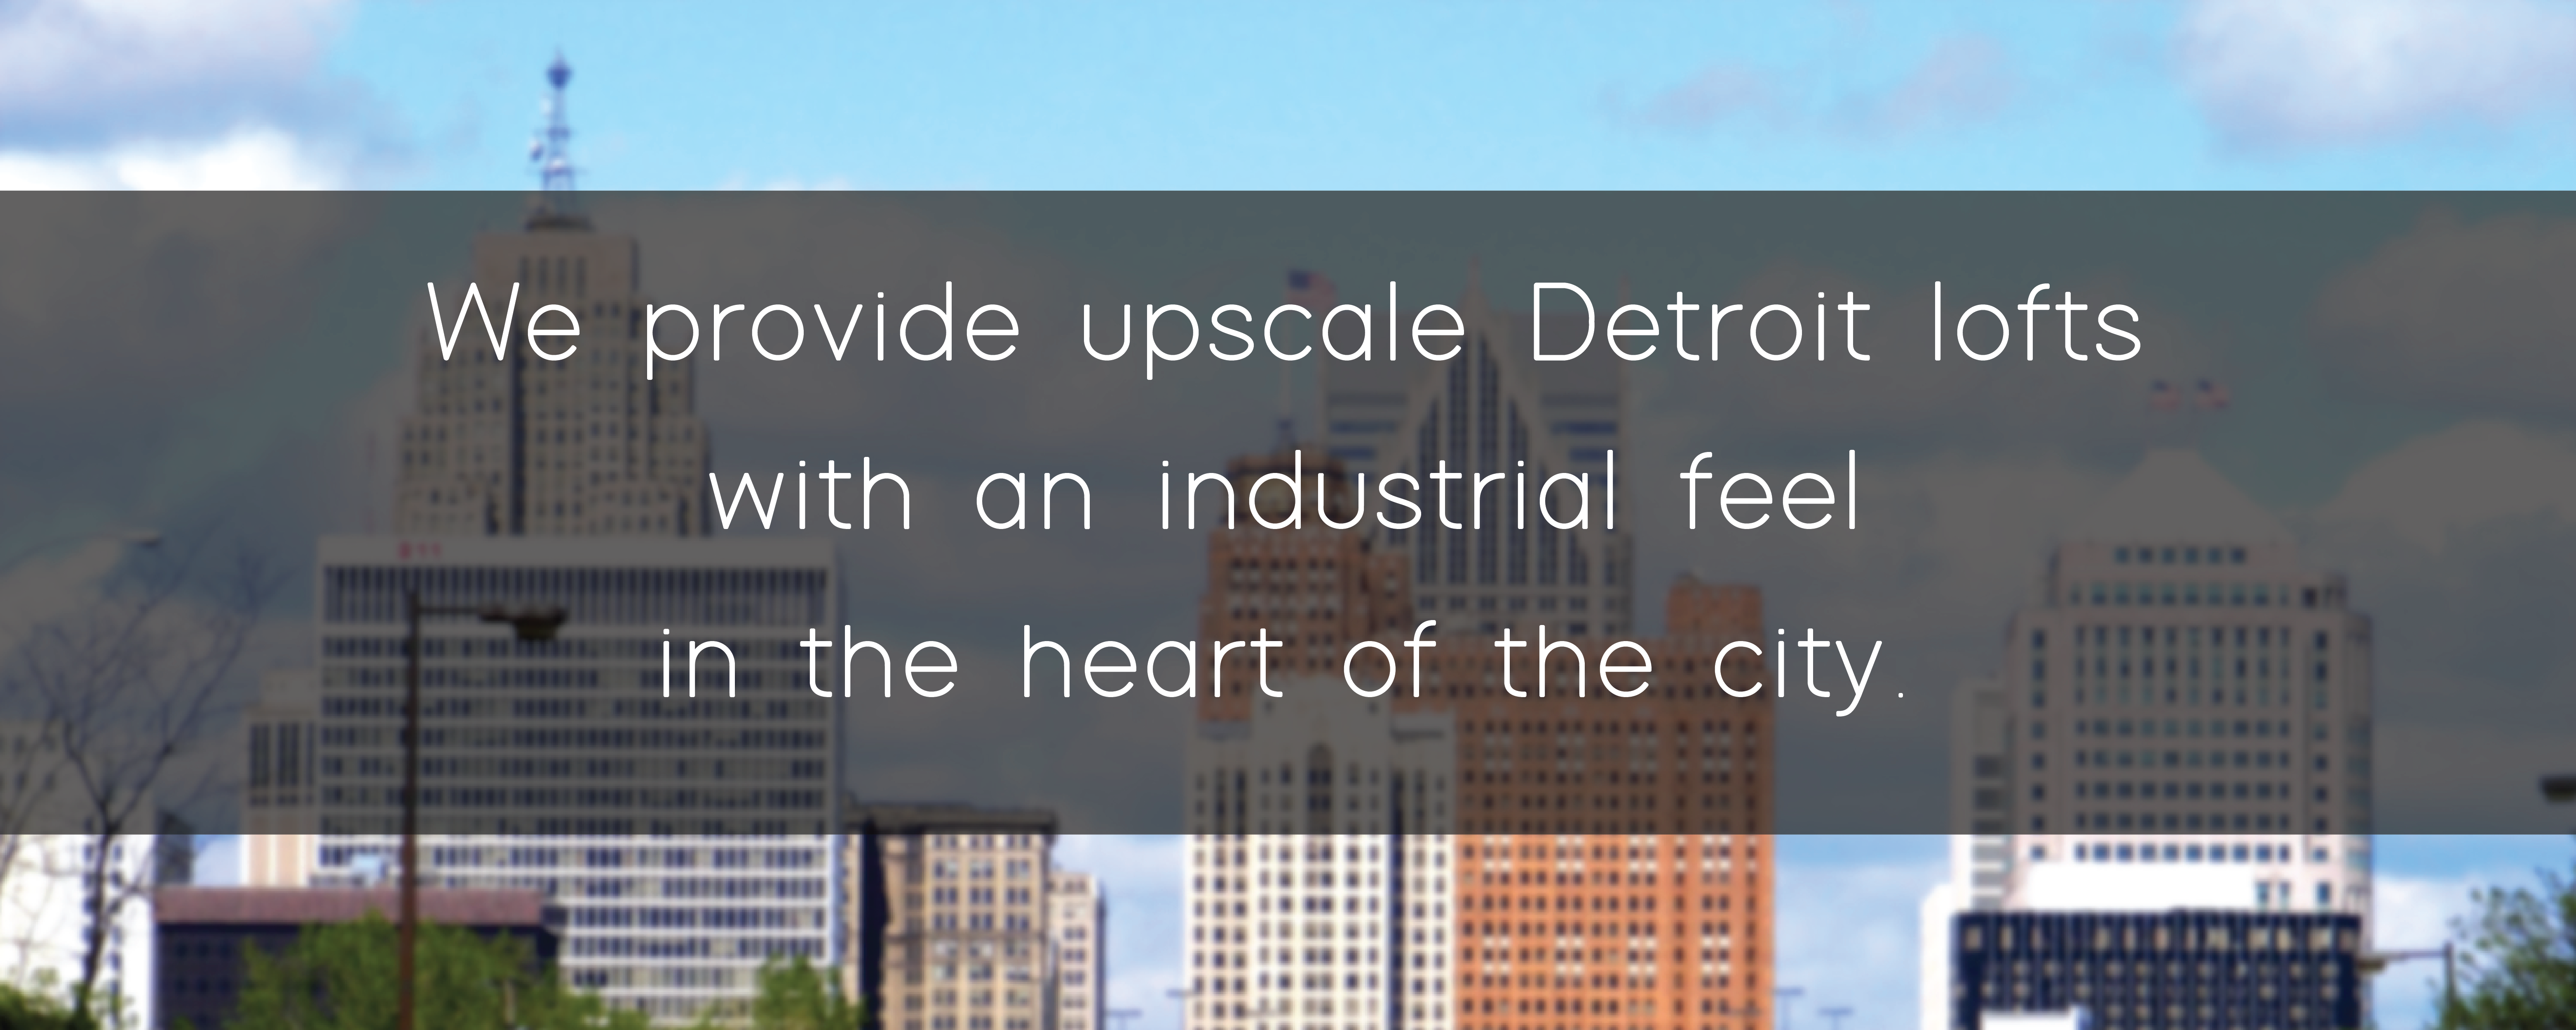 We provide upscale Detroit lofts with an industrial feel in the heart of the city.